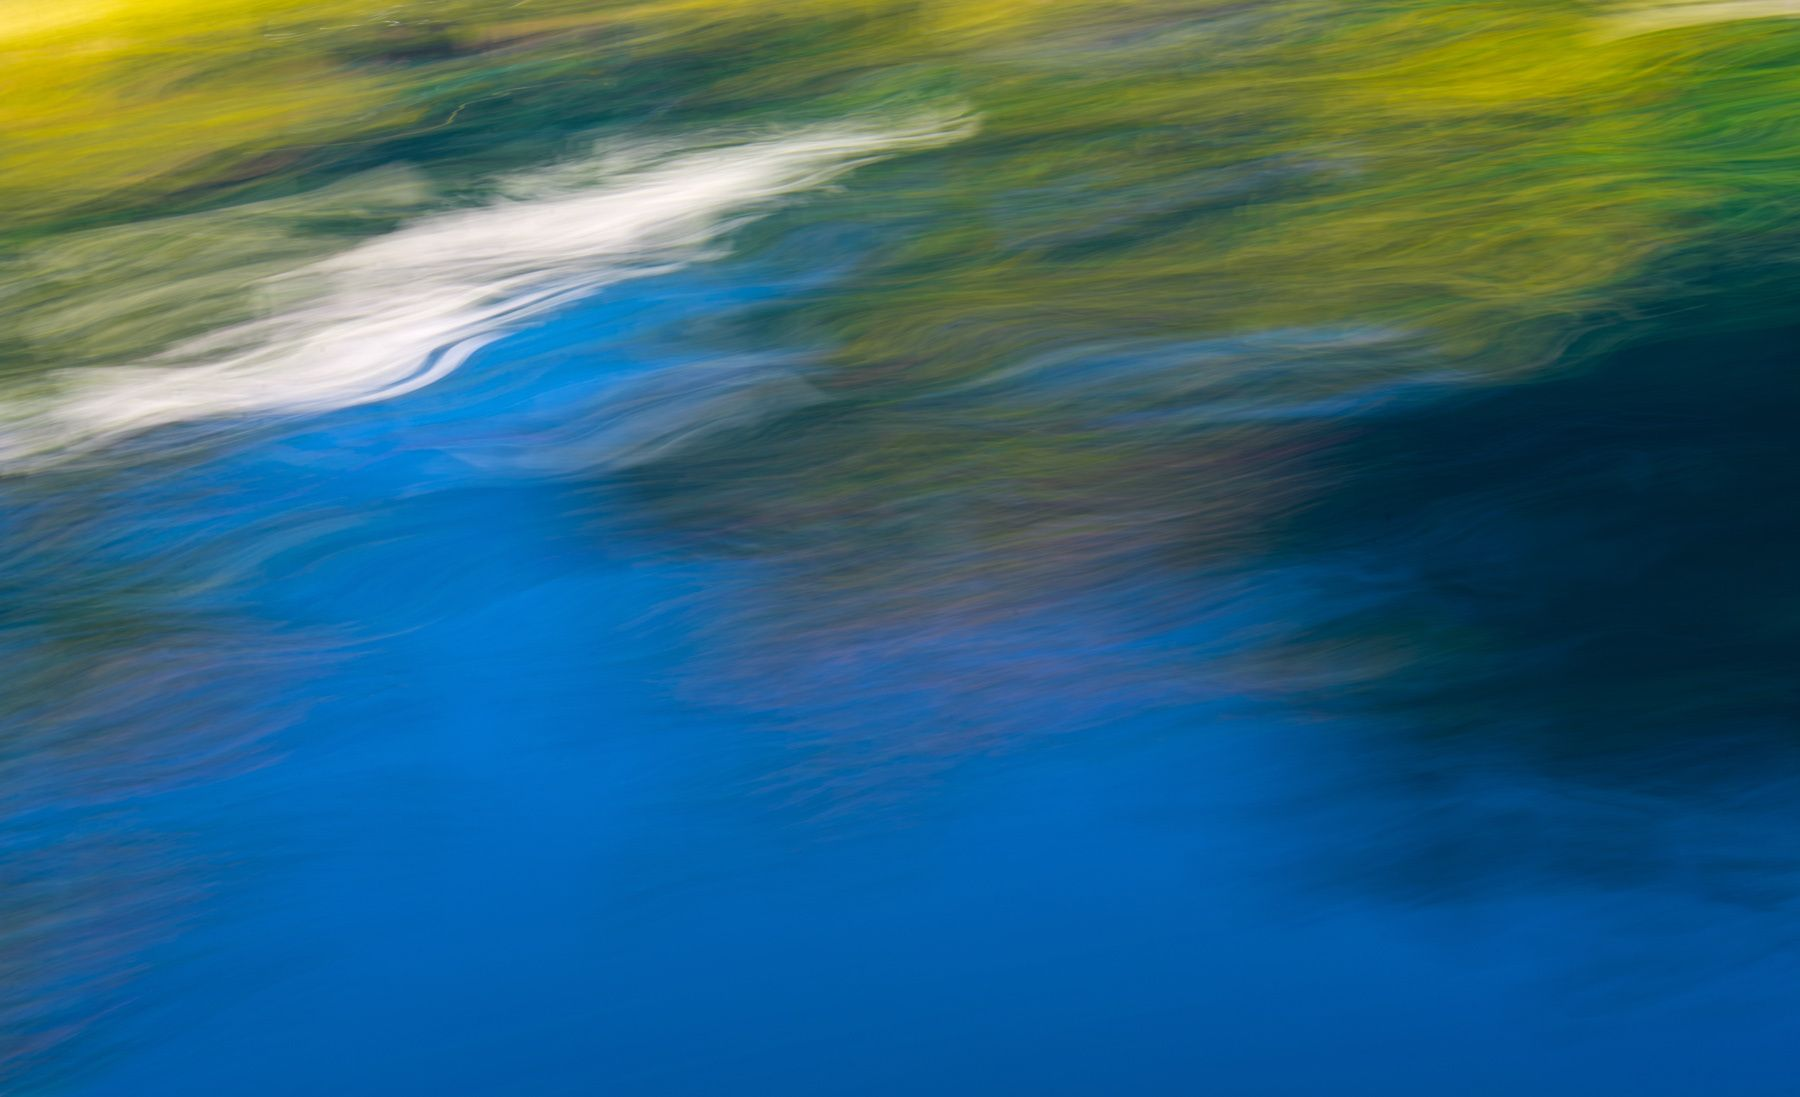 1riverblur1.jpg